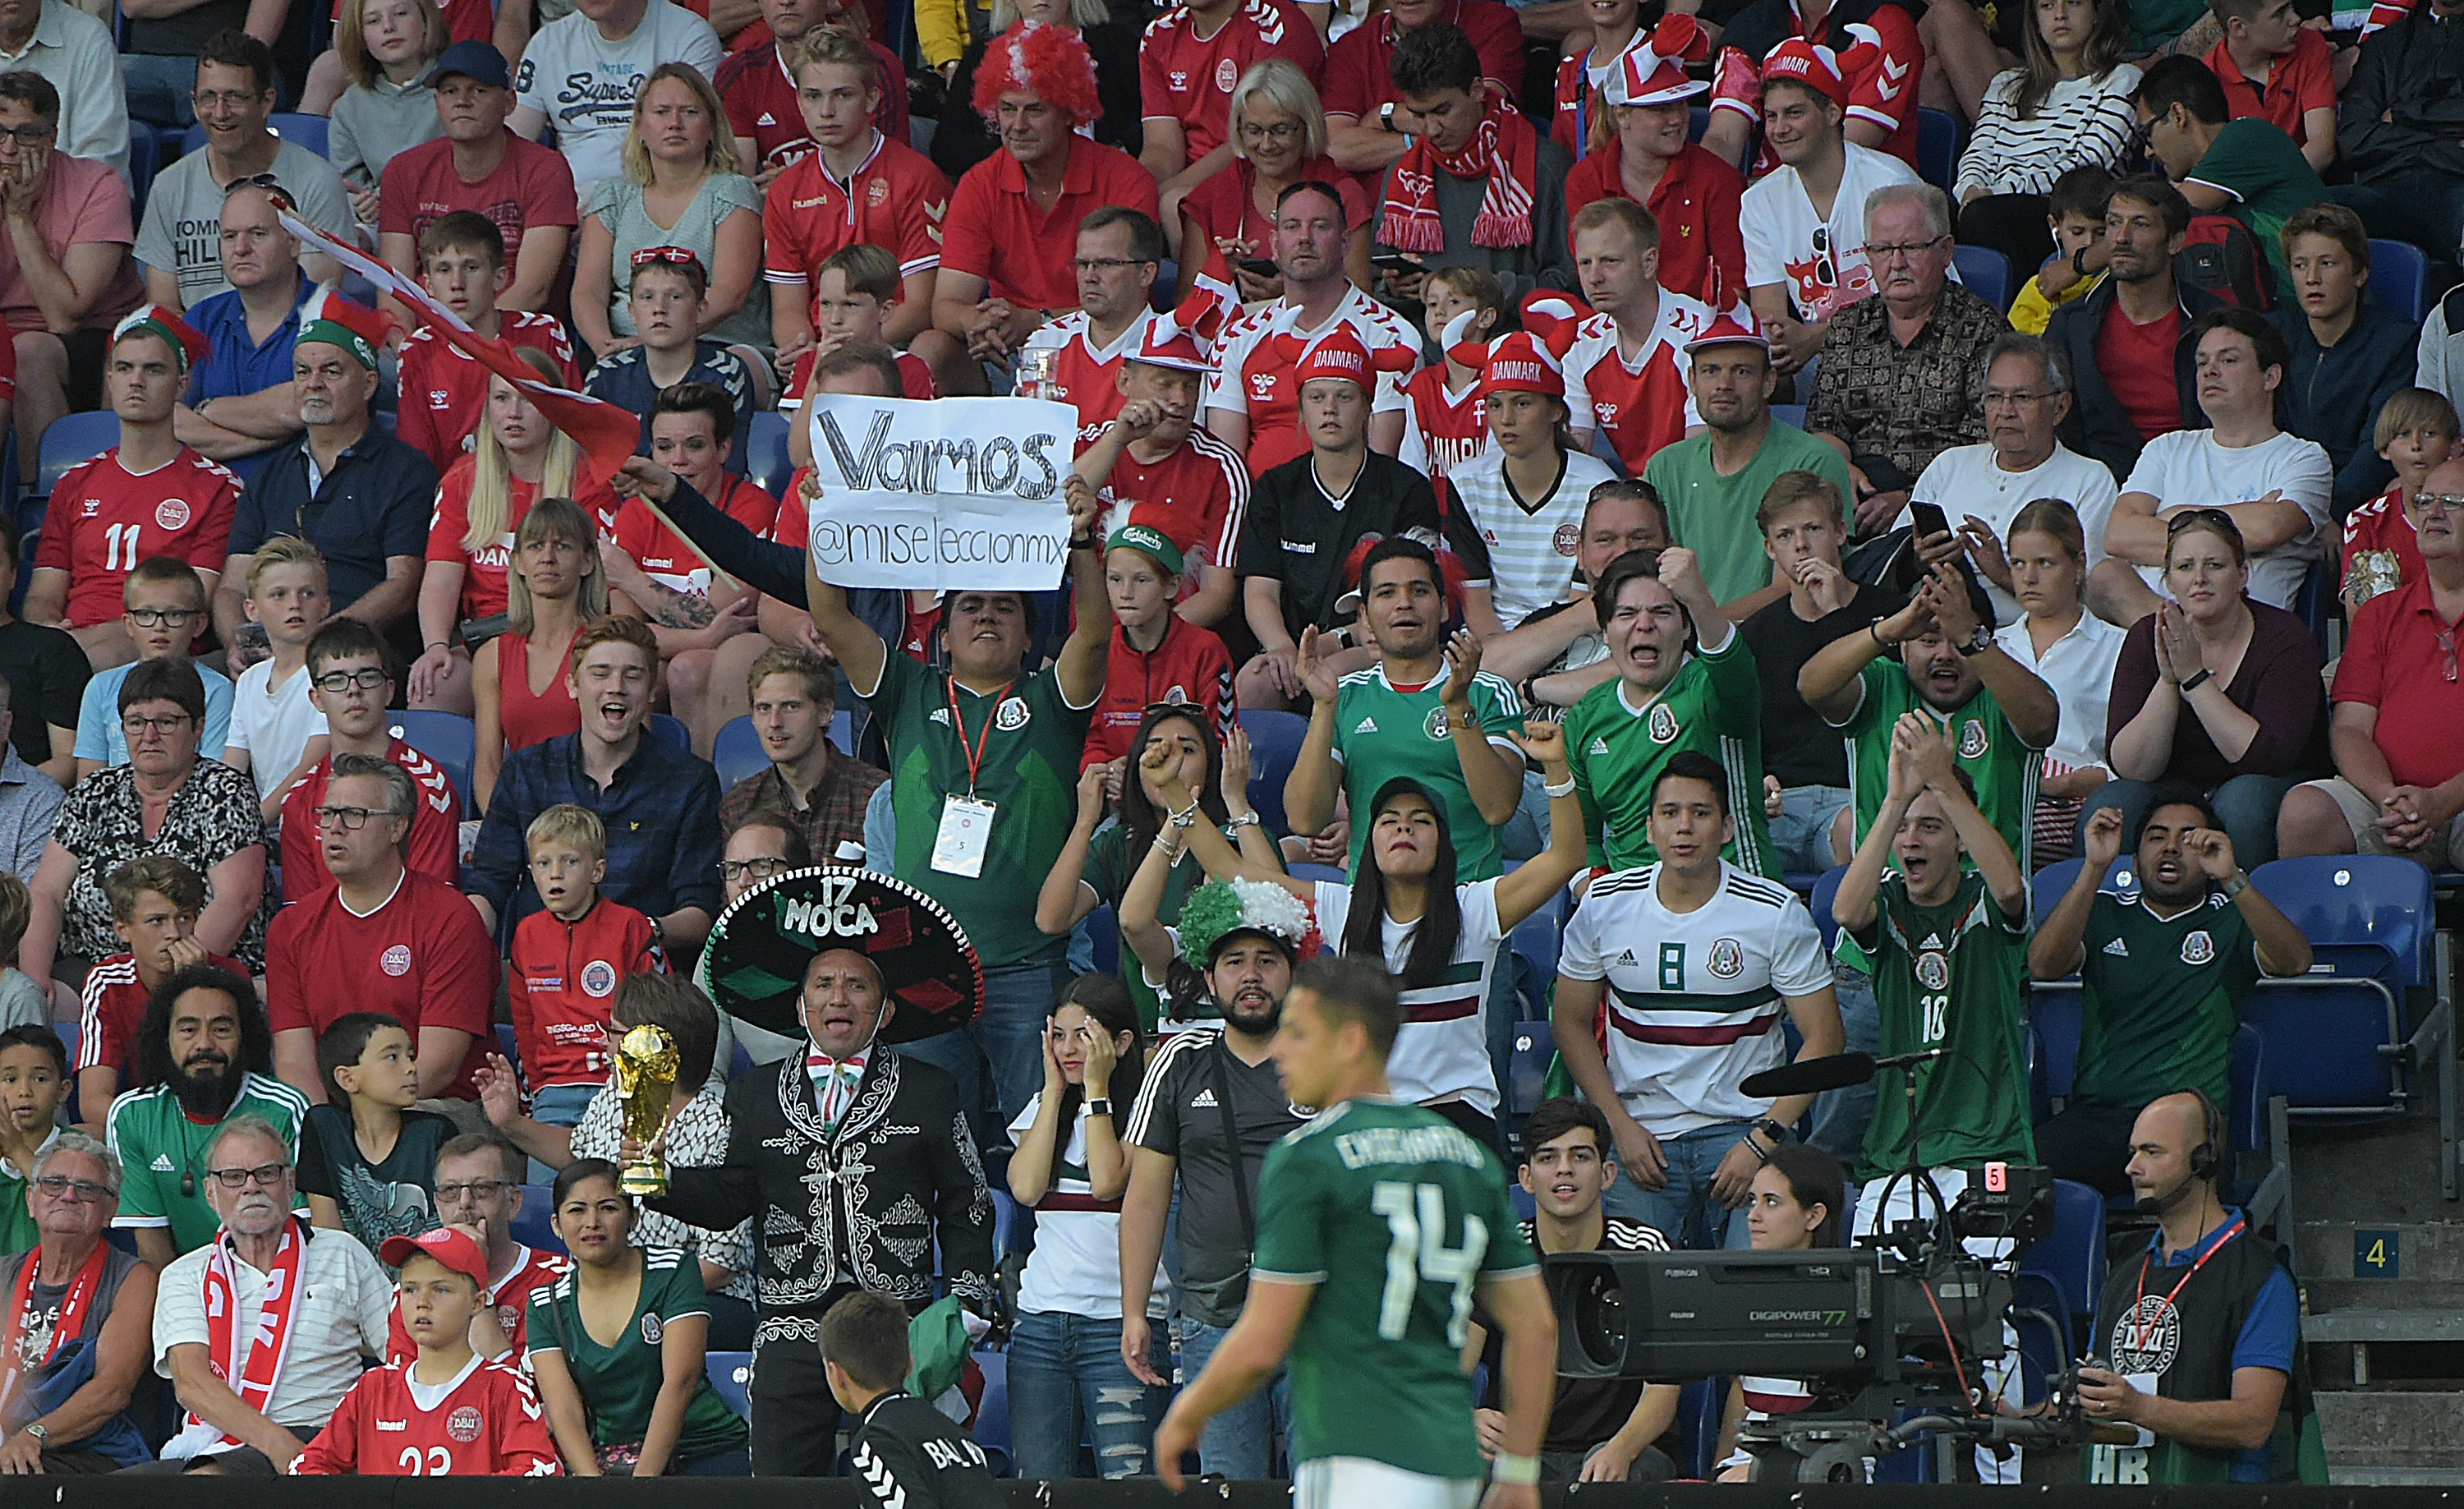 BRONDBY, DENMARK - JUNE 09: Supporters of Mexico cheer for their team during International Friendly match between Denmark v Mexico at Brondby Stadion on June 9, 2018 in Brondby, Denmark.